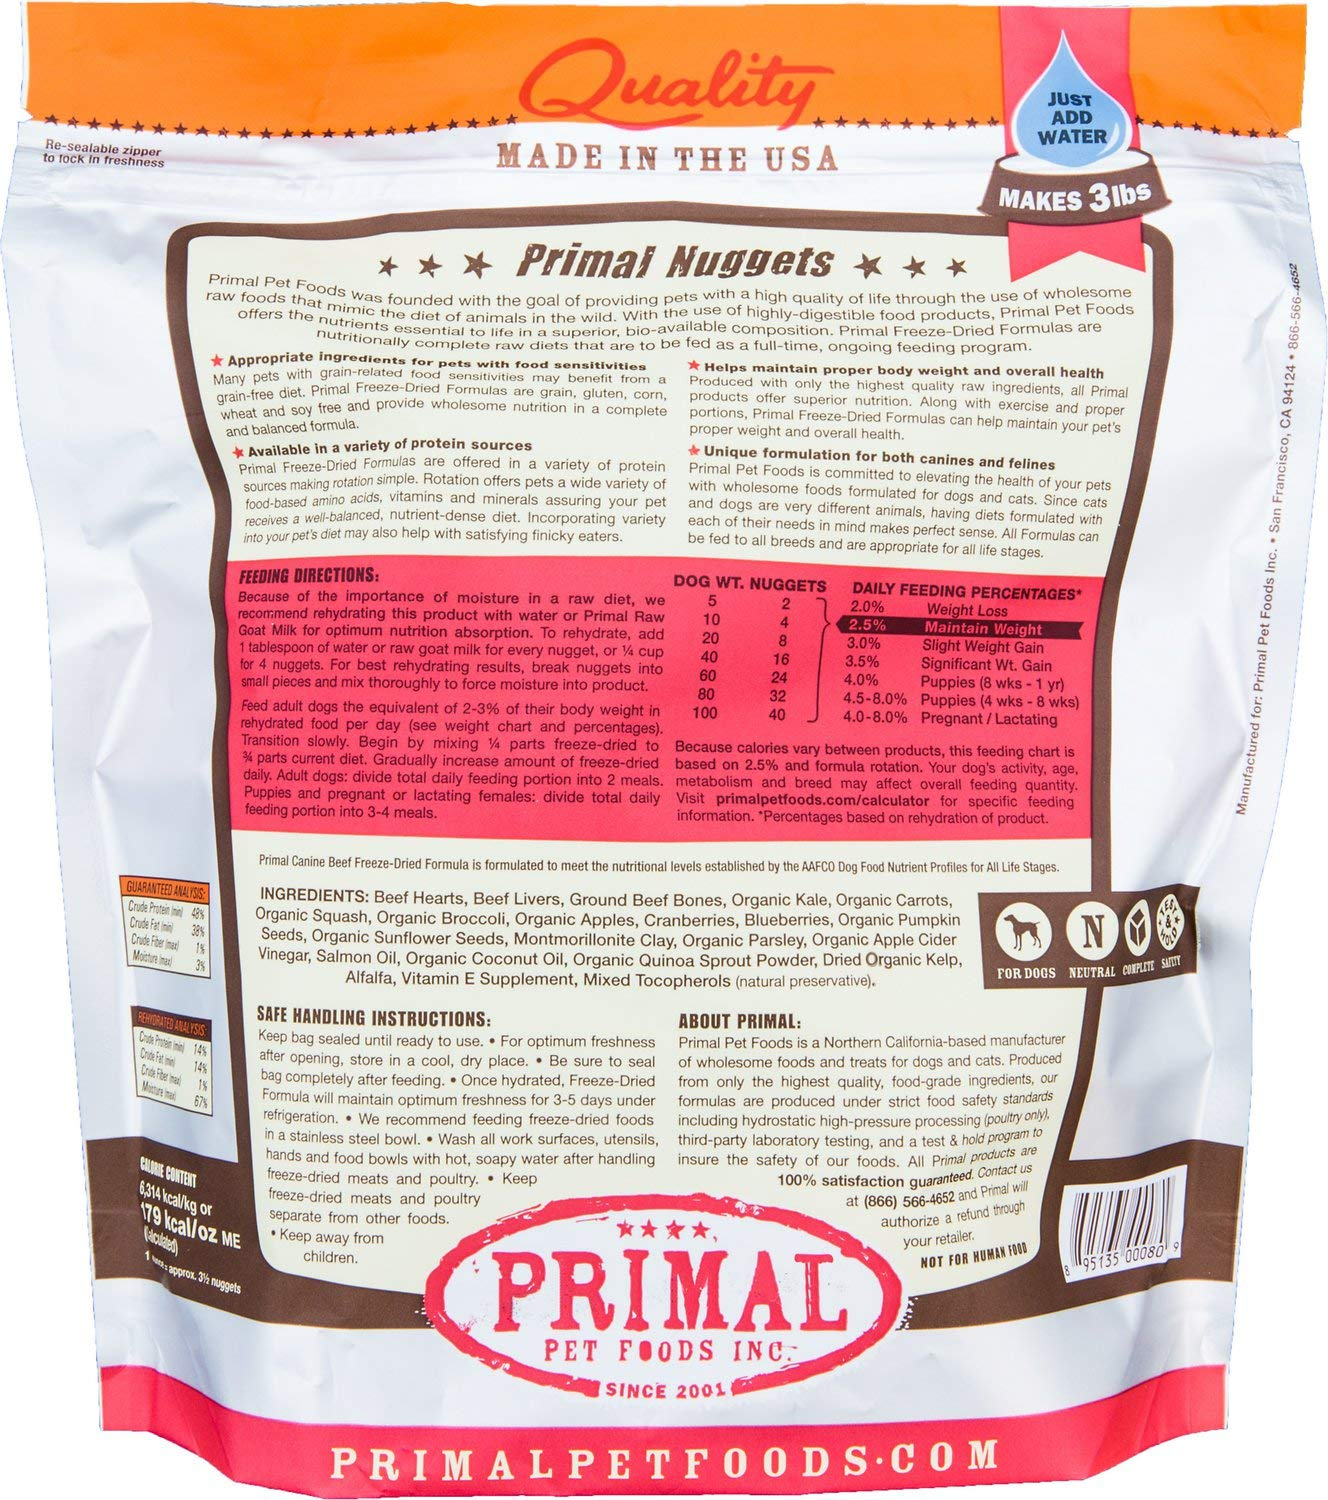 Amazon.com: Primal Freeze Dried Pet Foods: Kitchen & Dining